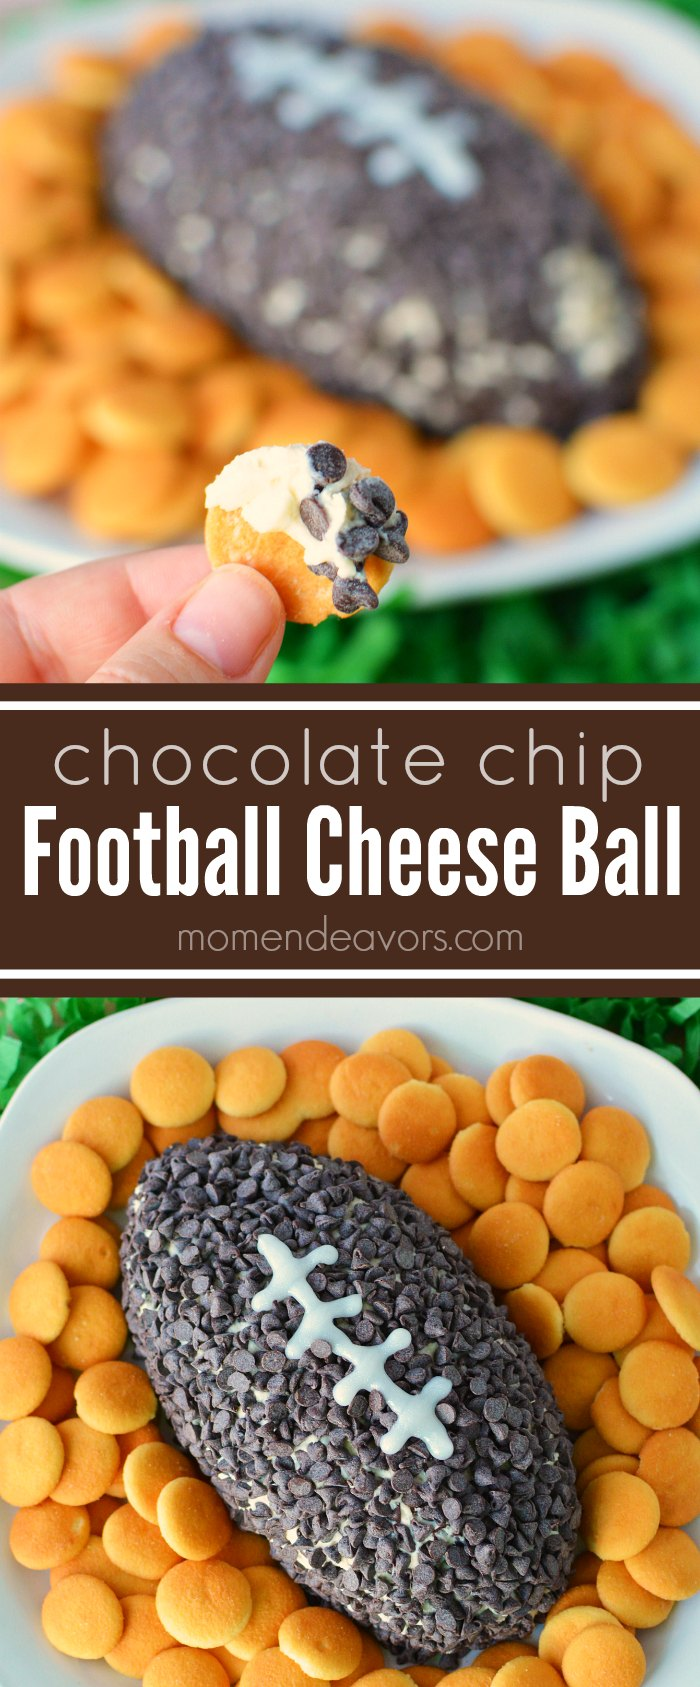 Chocolate Chip Football Cheese Ball Recipe